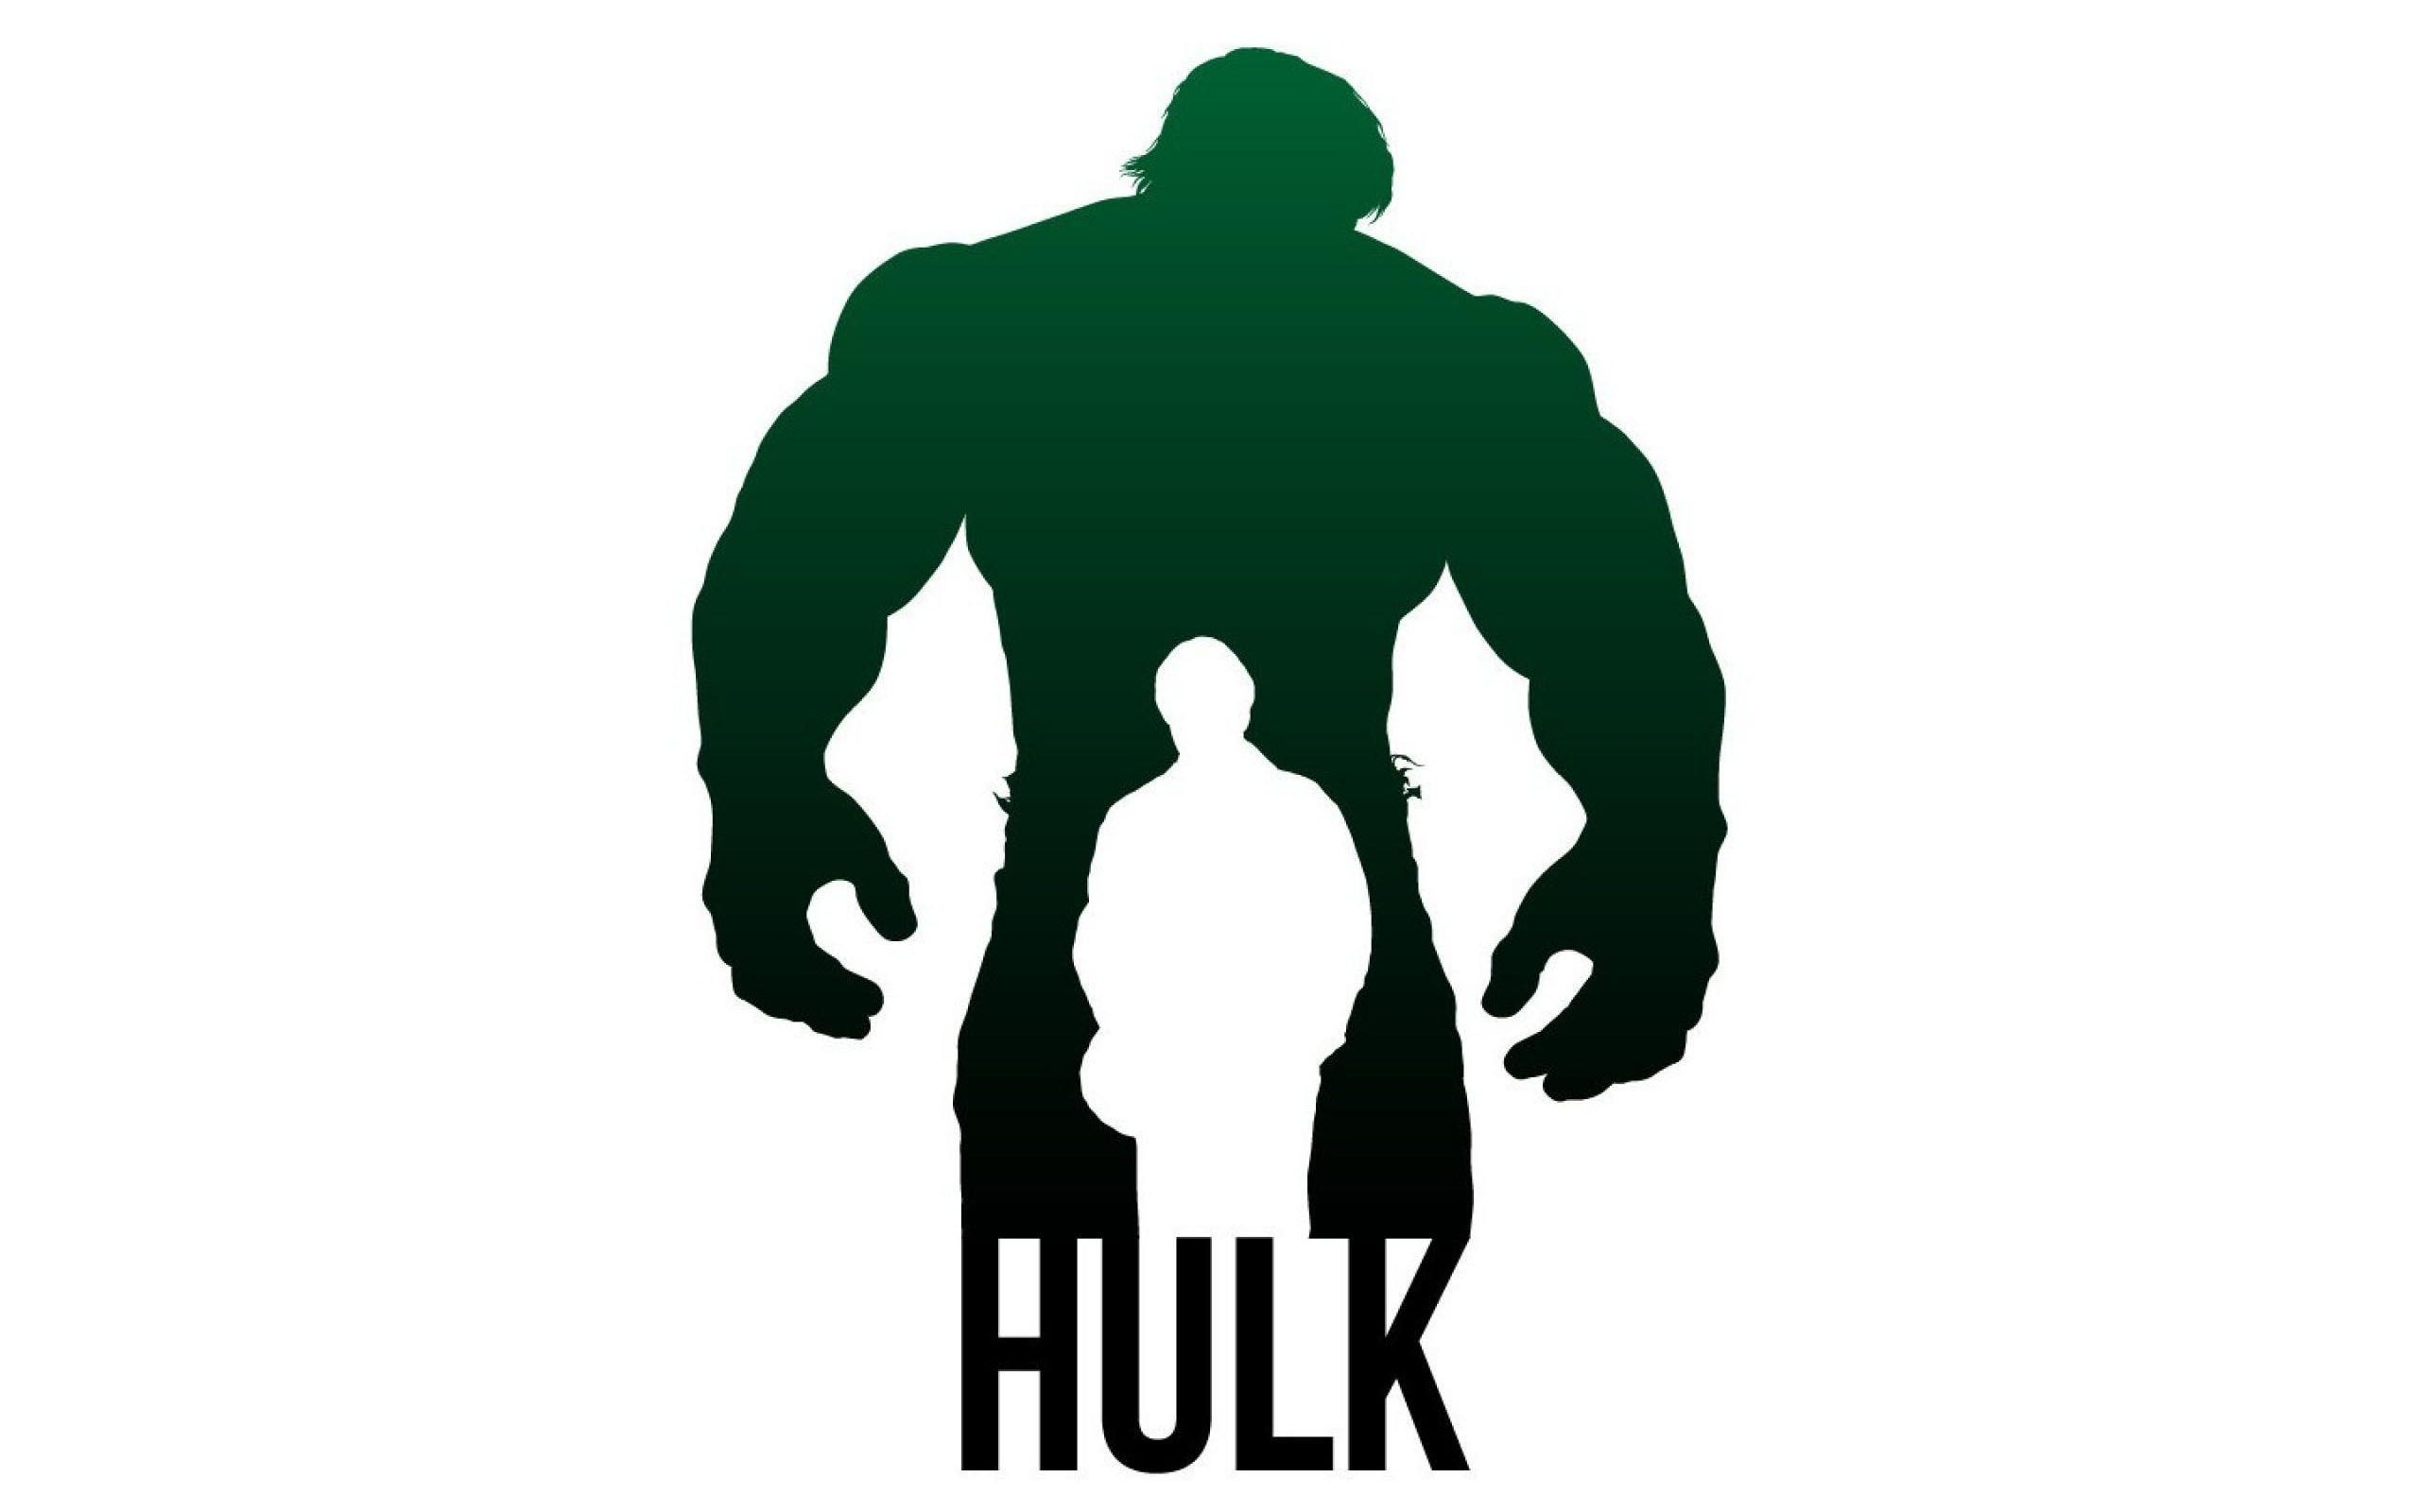 hulk svg free #1119, Download drawings